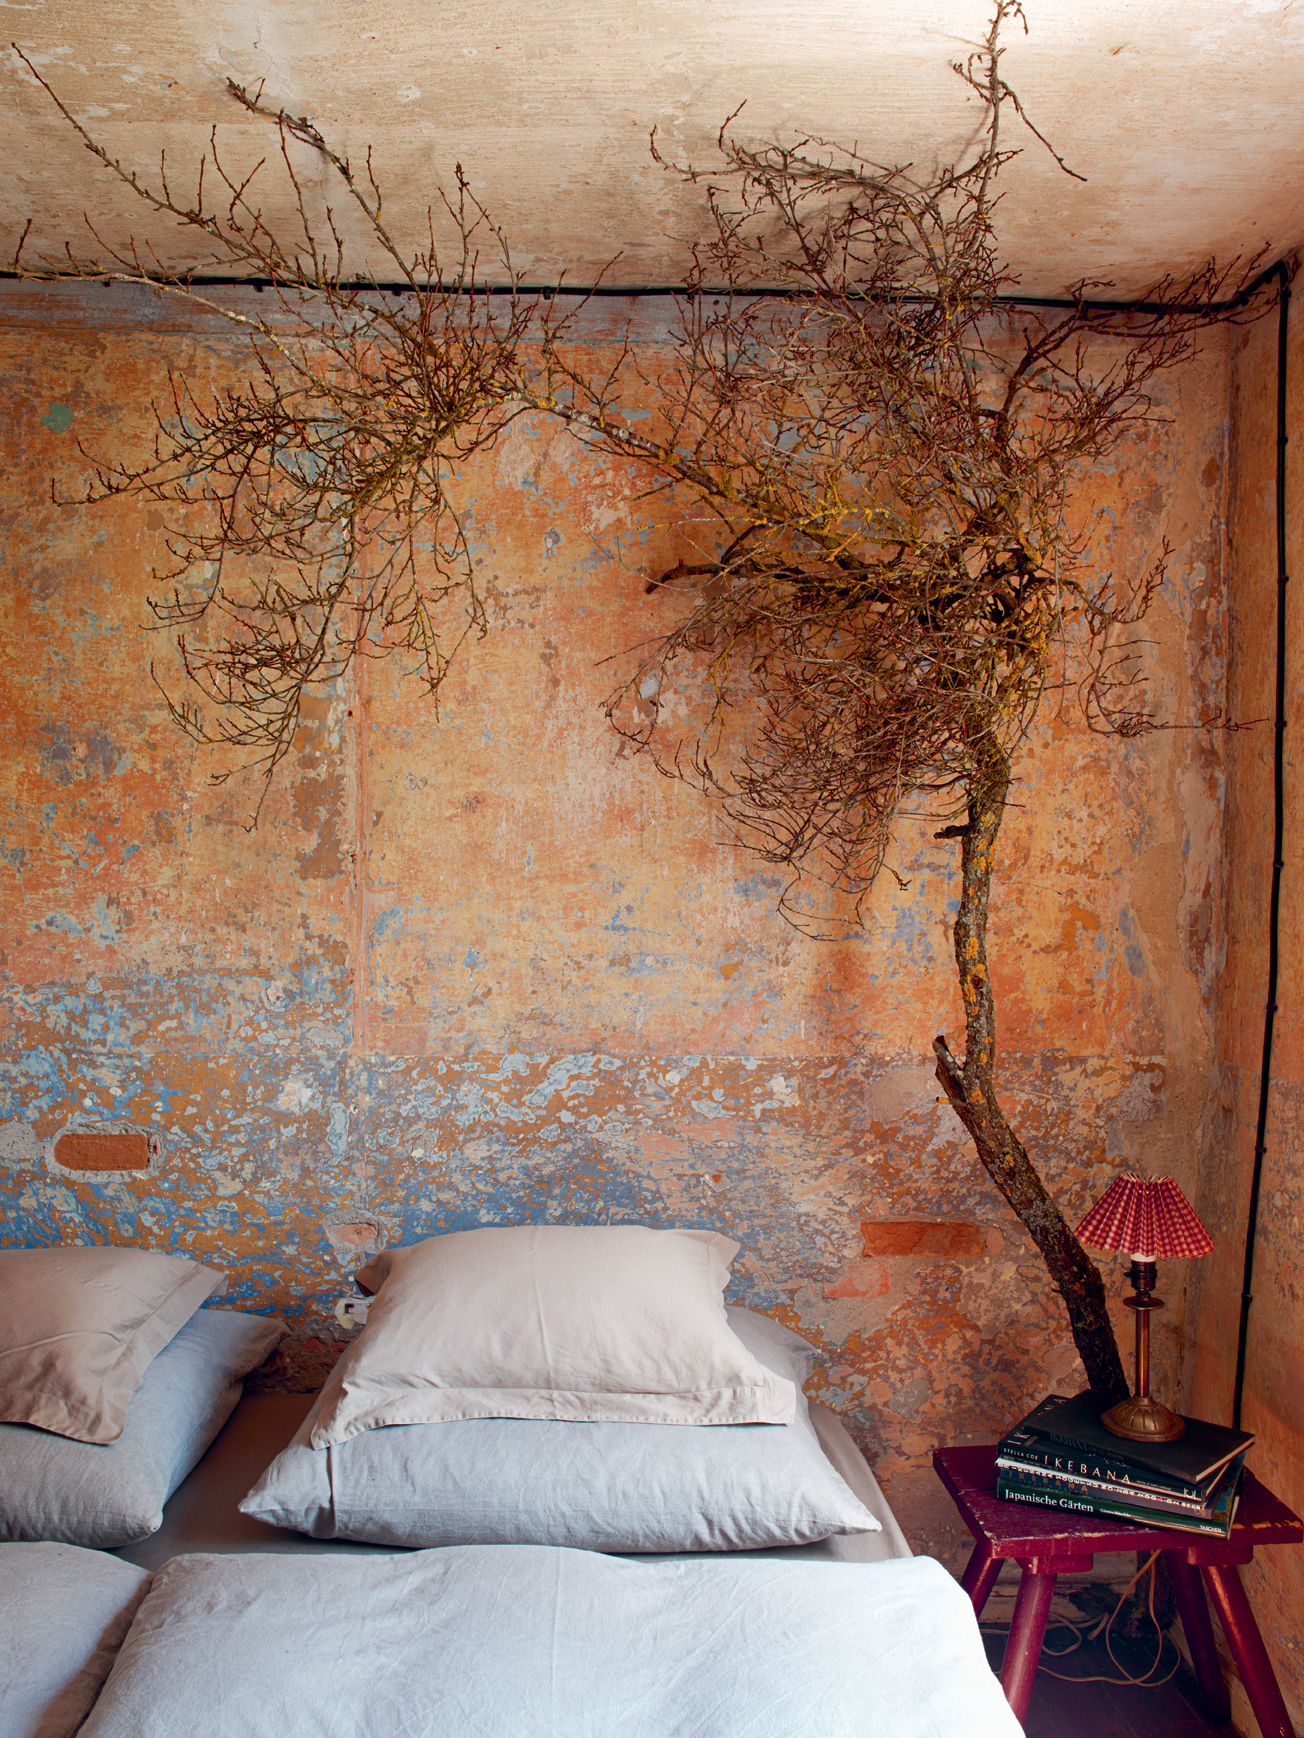 Five ideas for decorating your home with foraged finds